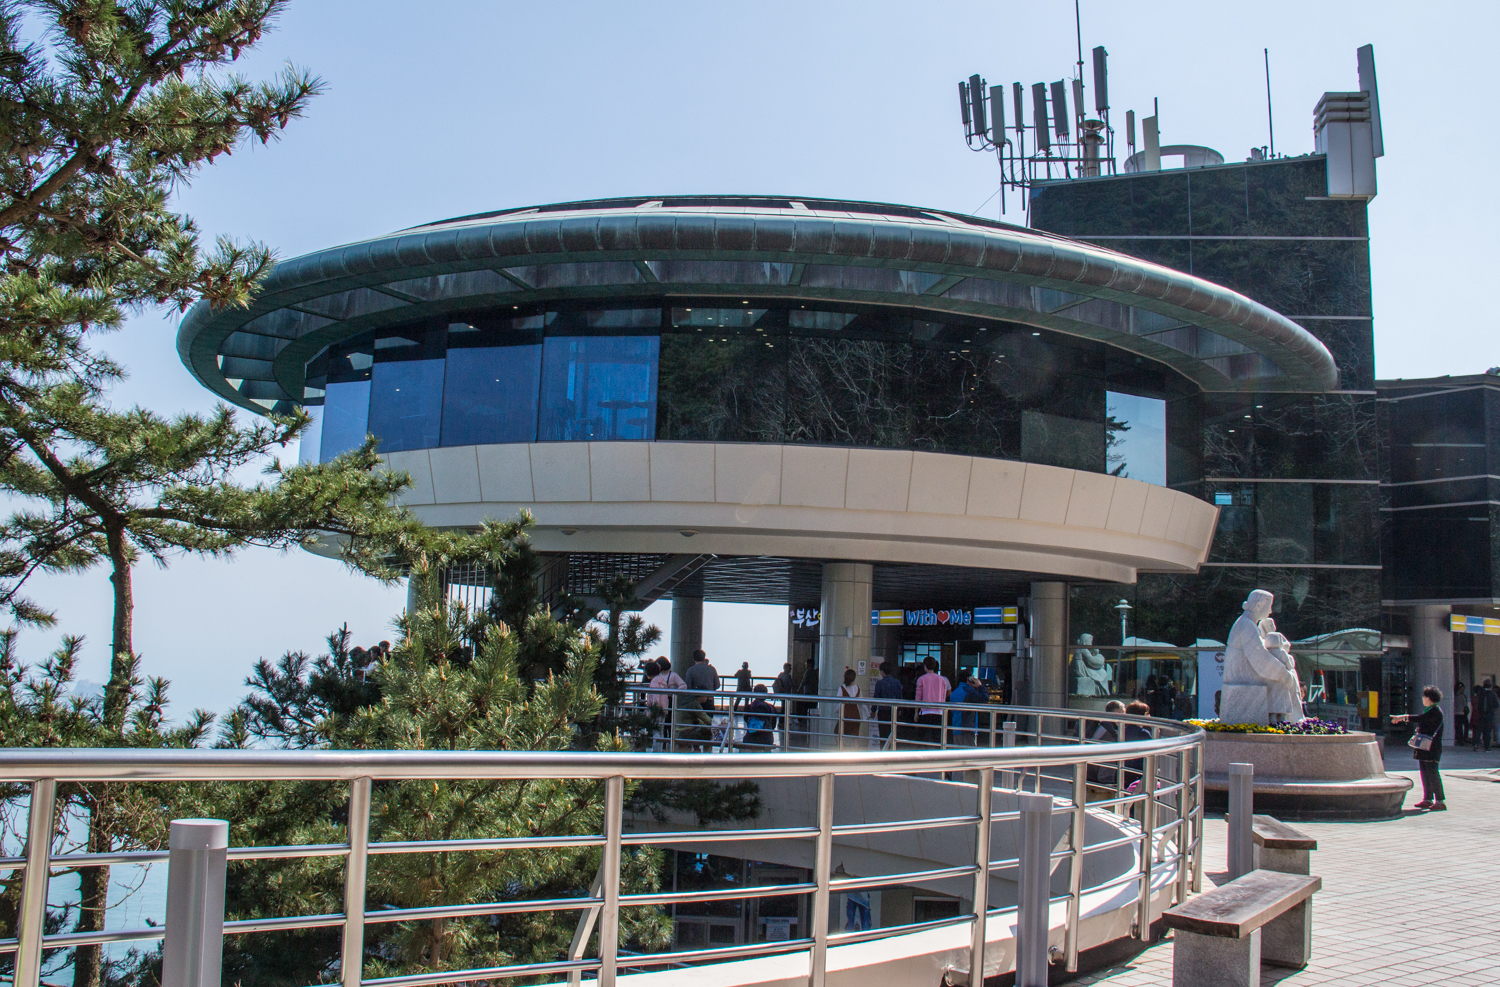 The Taejongdae Park Observatory in Busan, South Korea